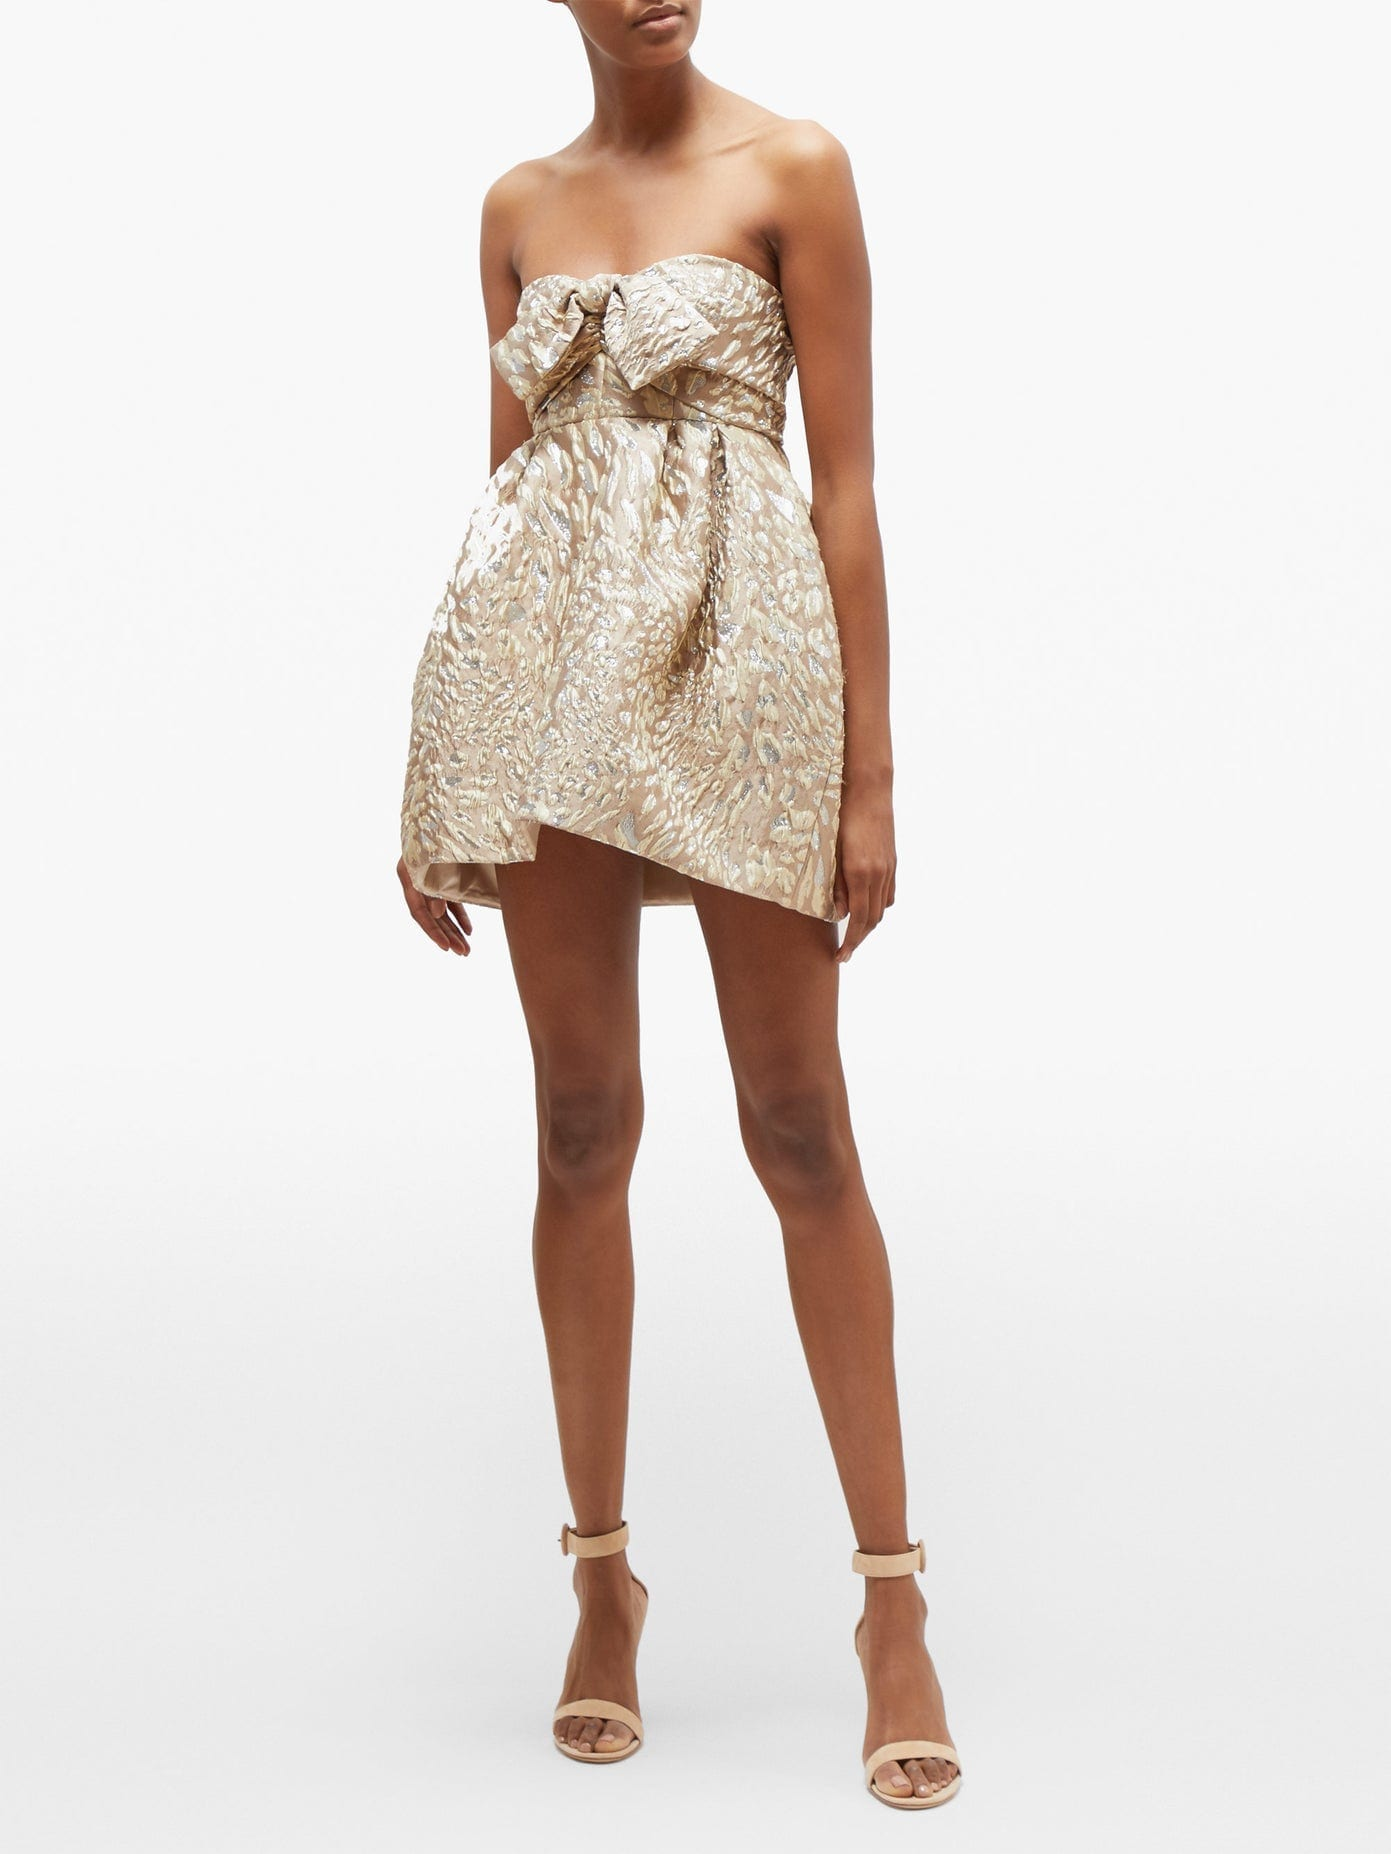 ALEXANDRE VAUTHIER Metallic Leopard-jacquard Mini Dress